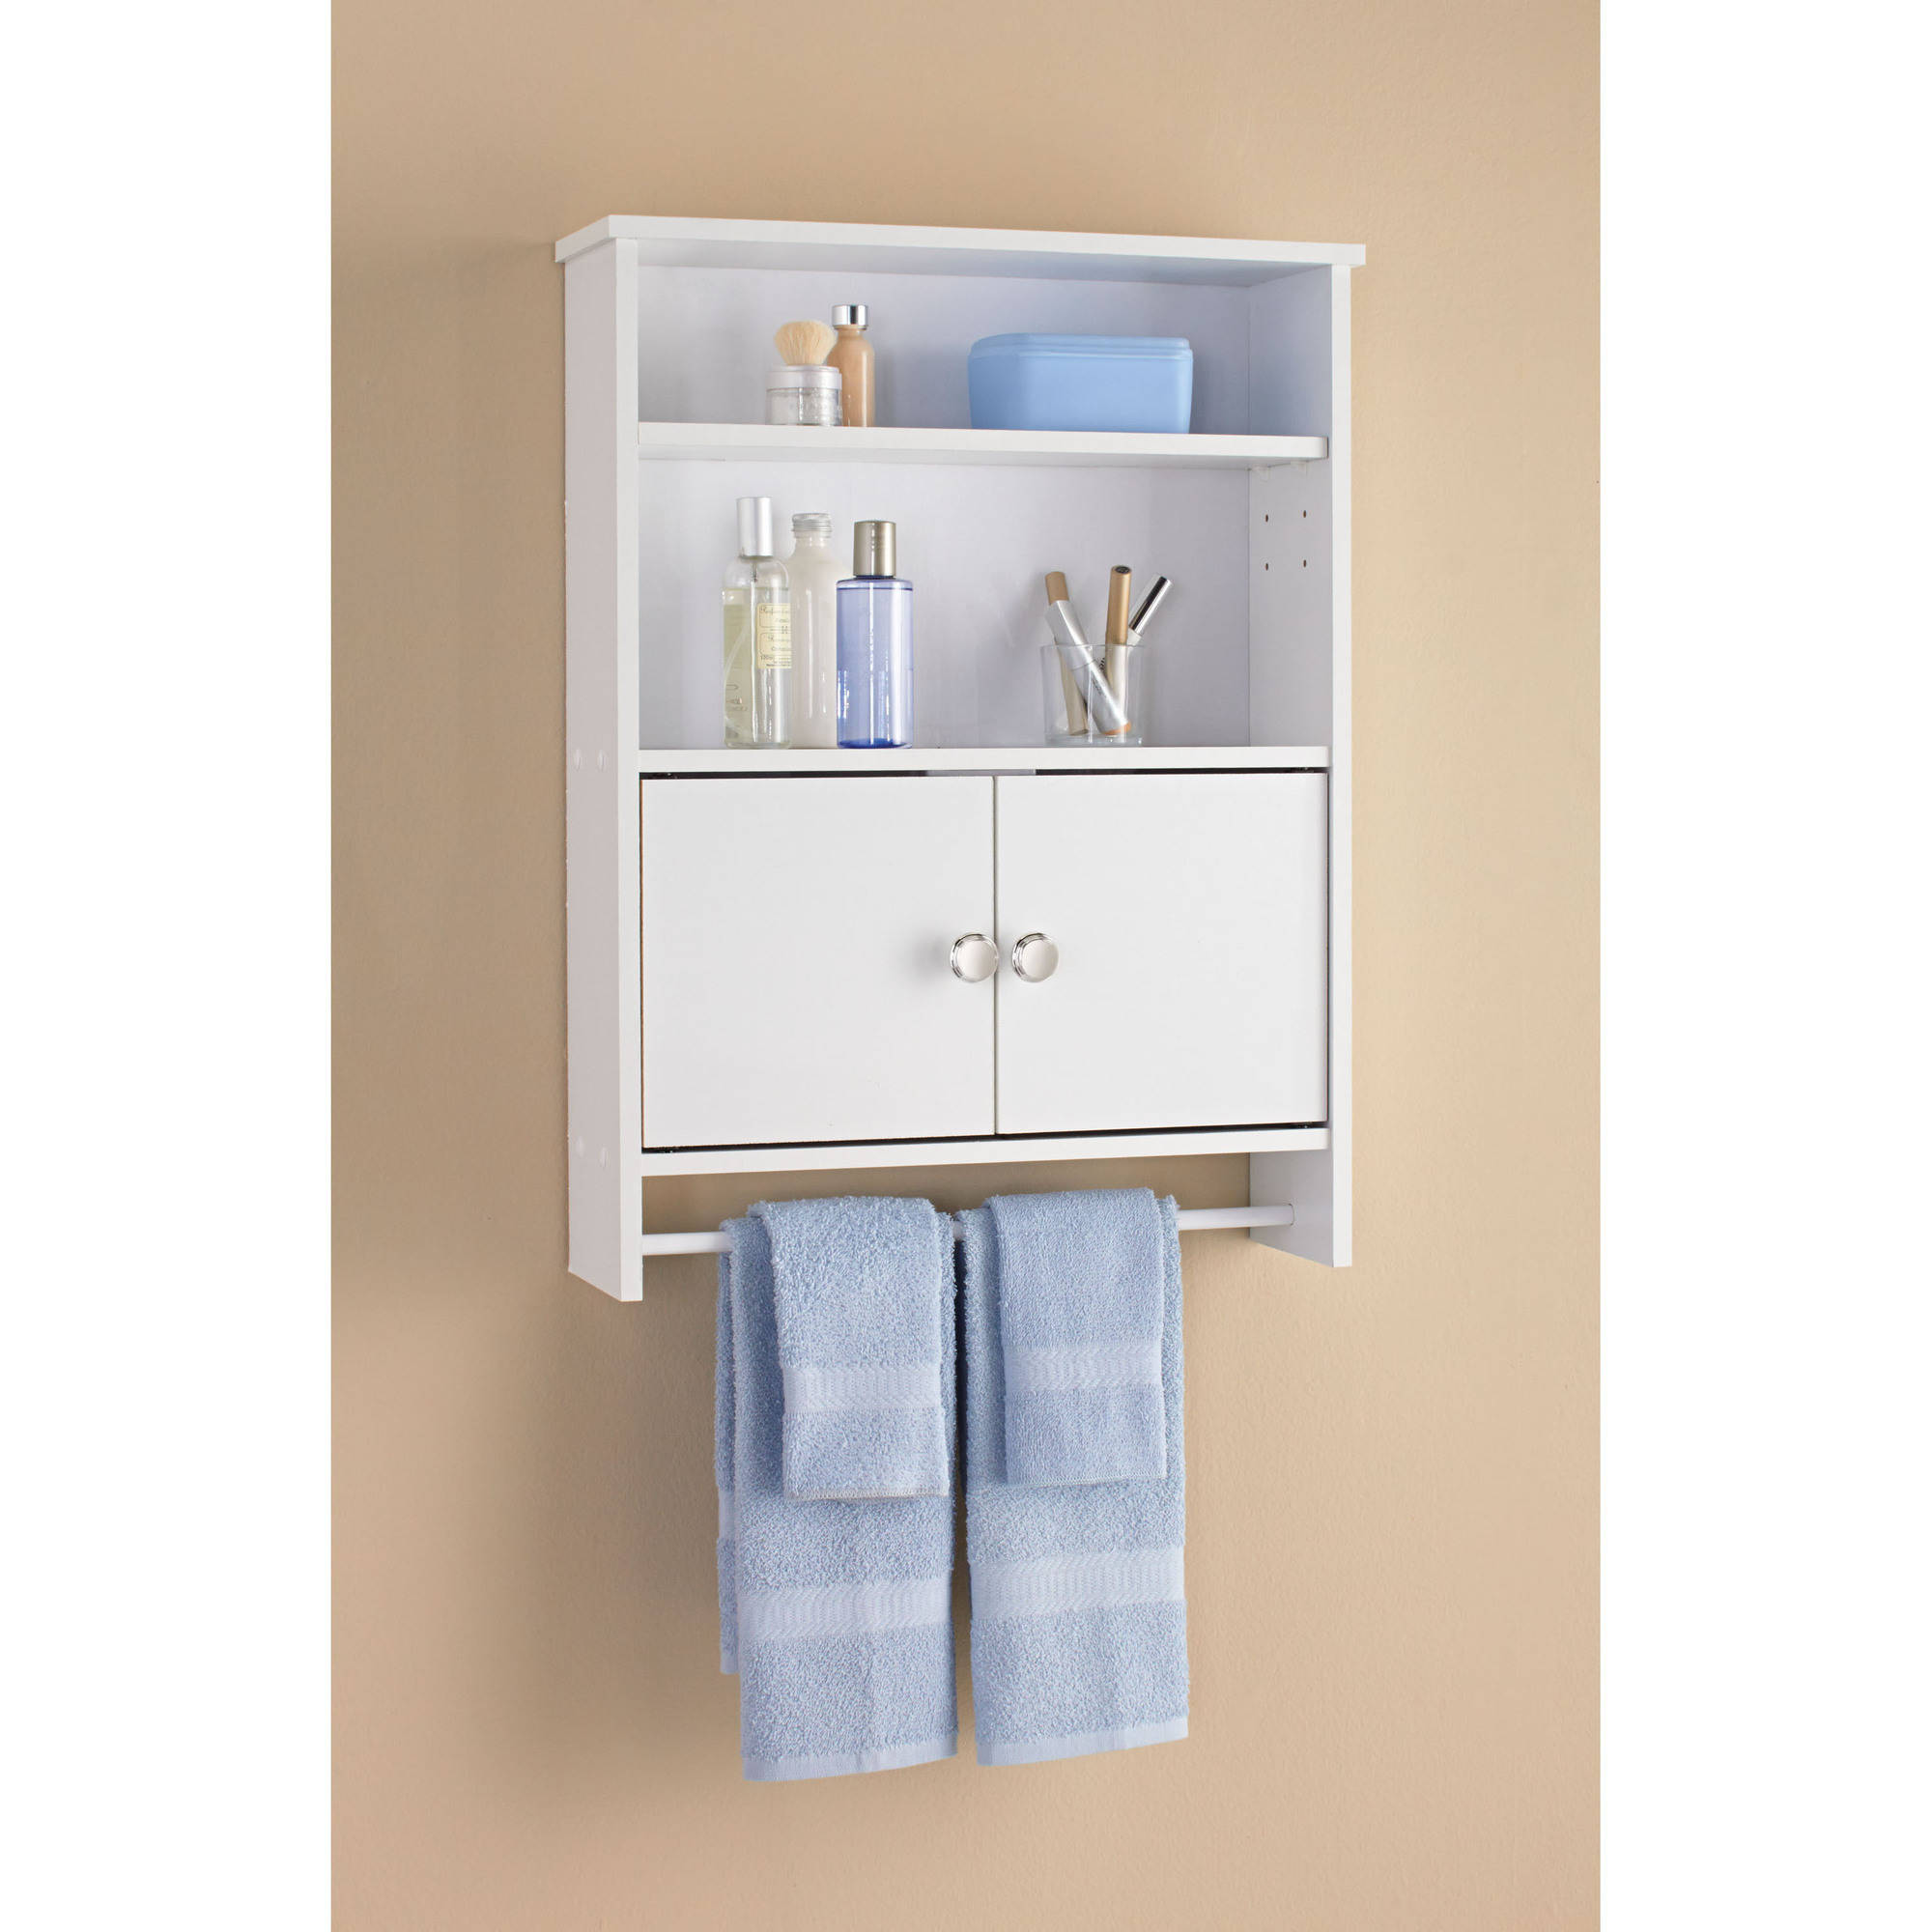 Mainstays 2 Door Wood Wall Cabinet, White